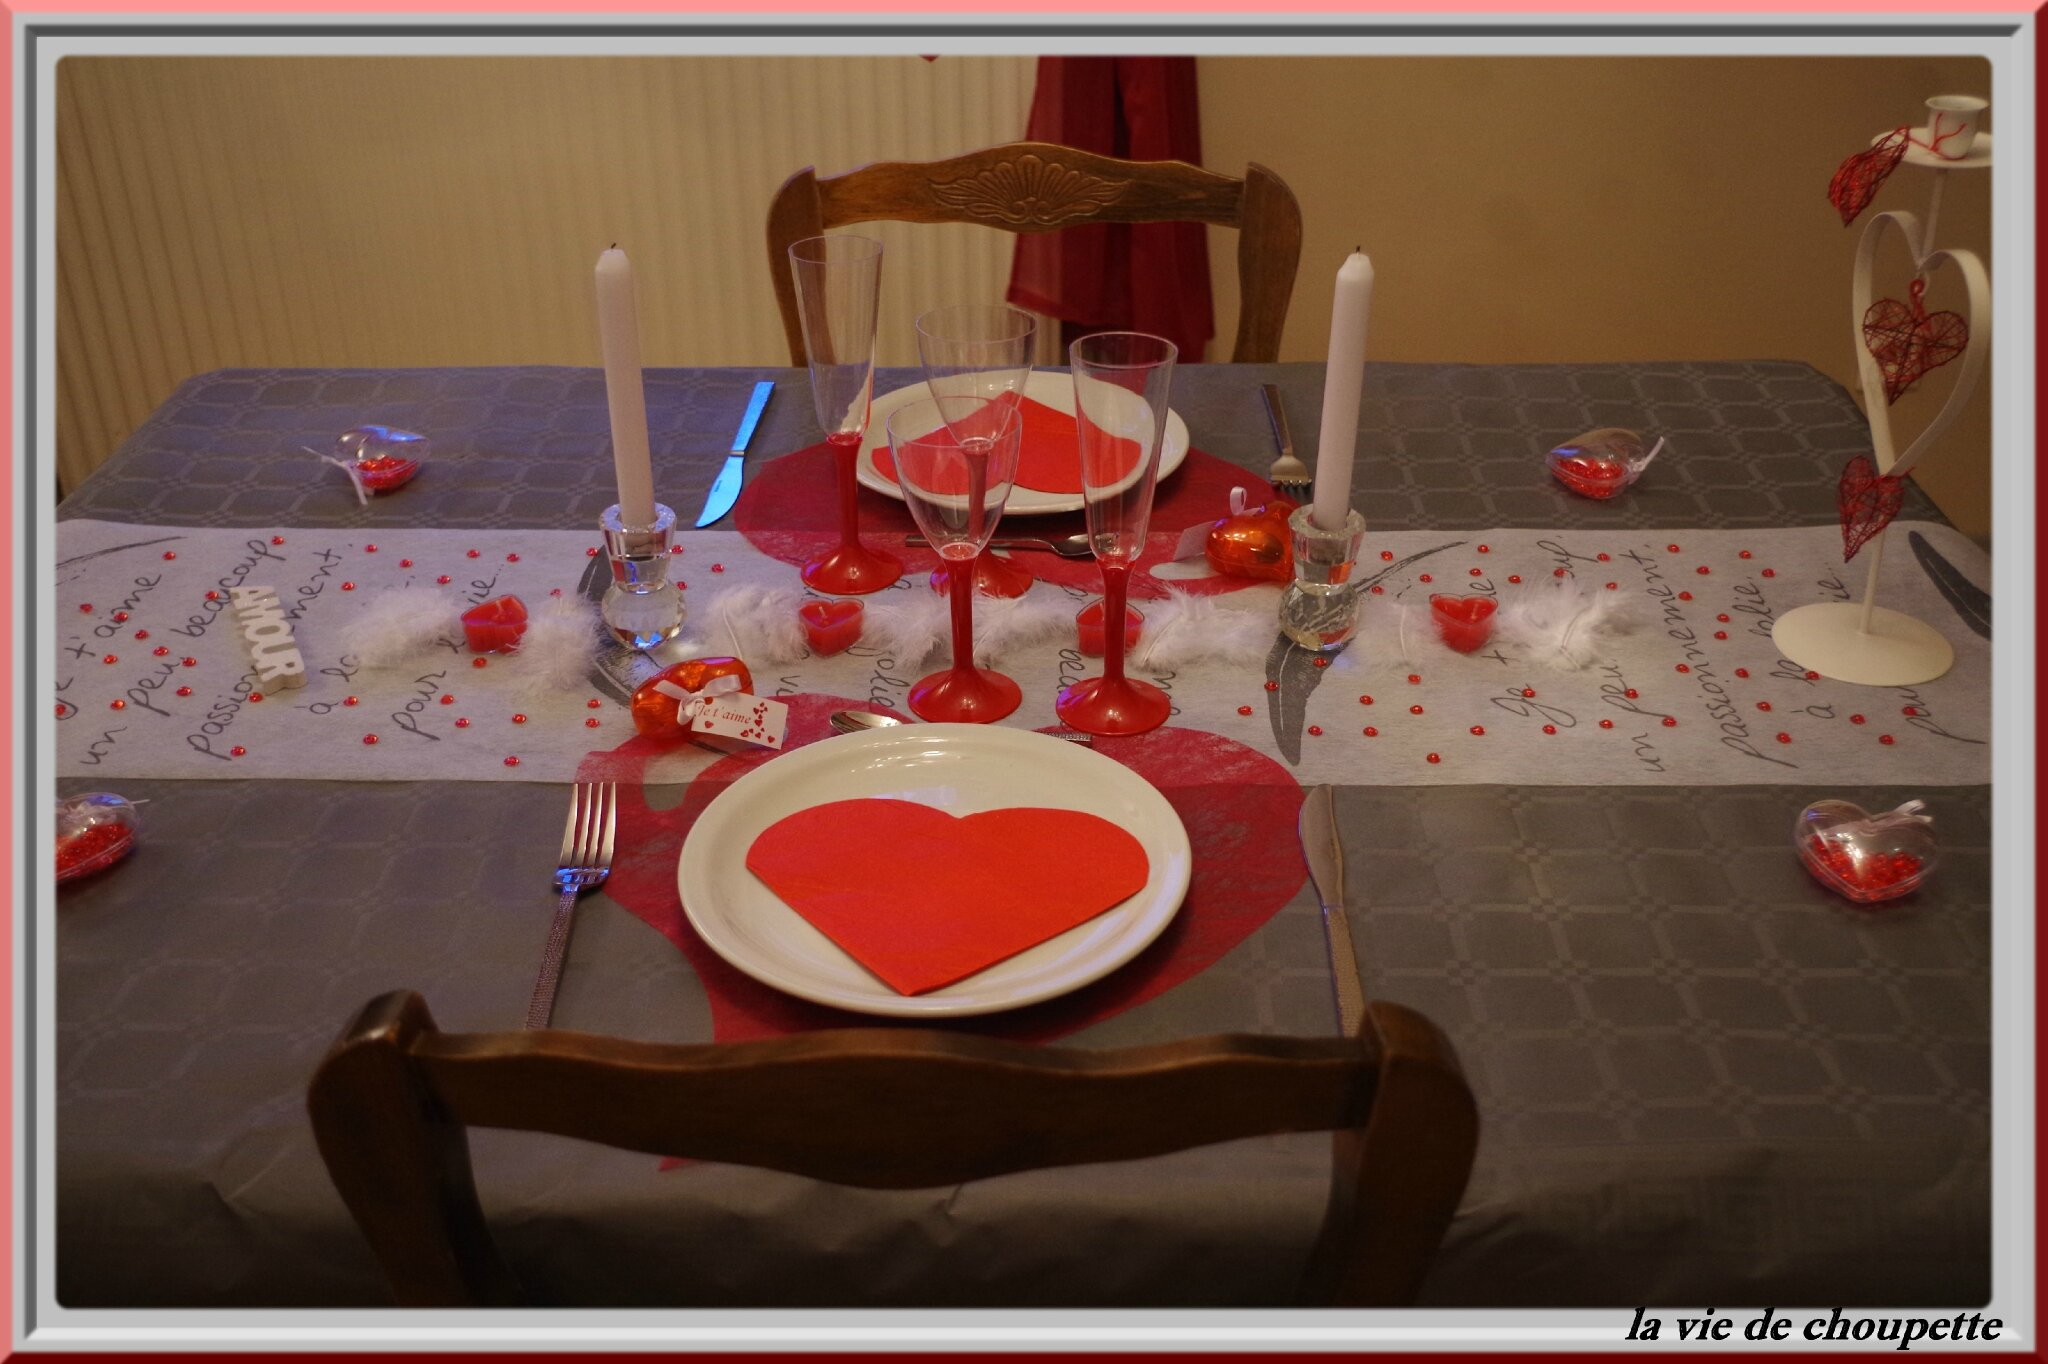 MA TABLE SAINT-VALENTIN GRISE ET ROUGE 2015